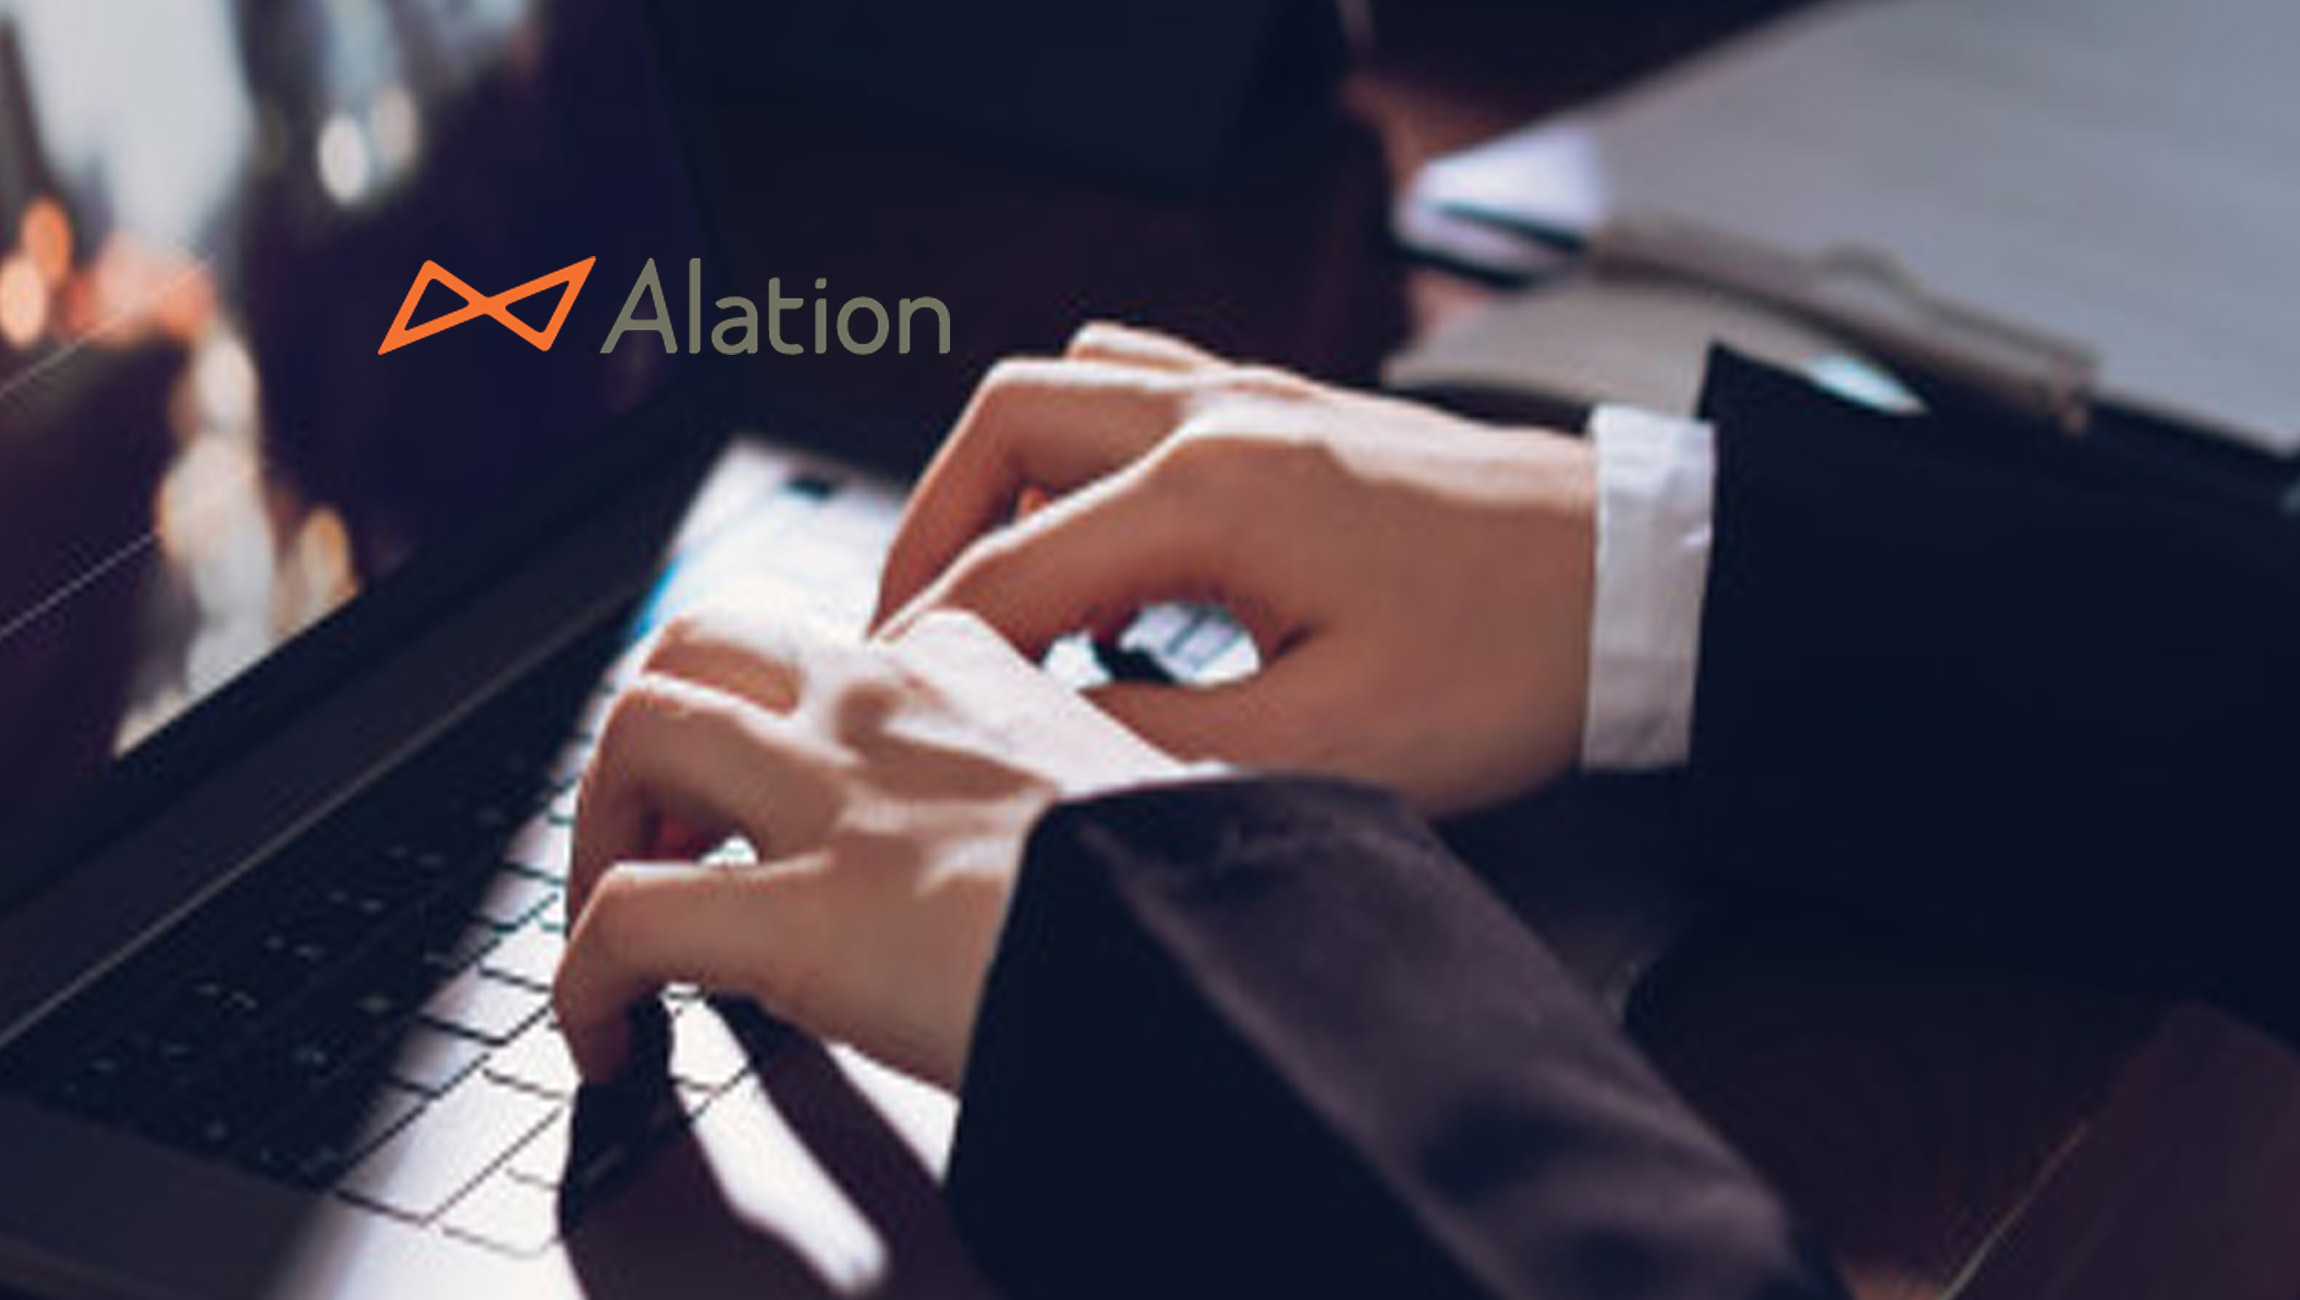 Alation Expands Leadership Team, Appoints World-Class Marketing Executive as CMO